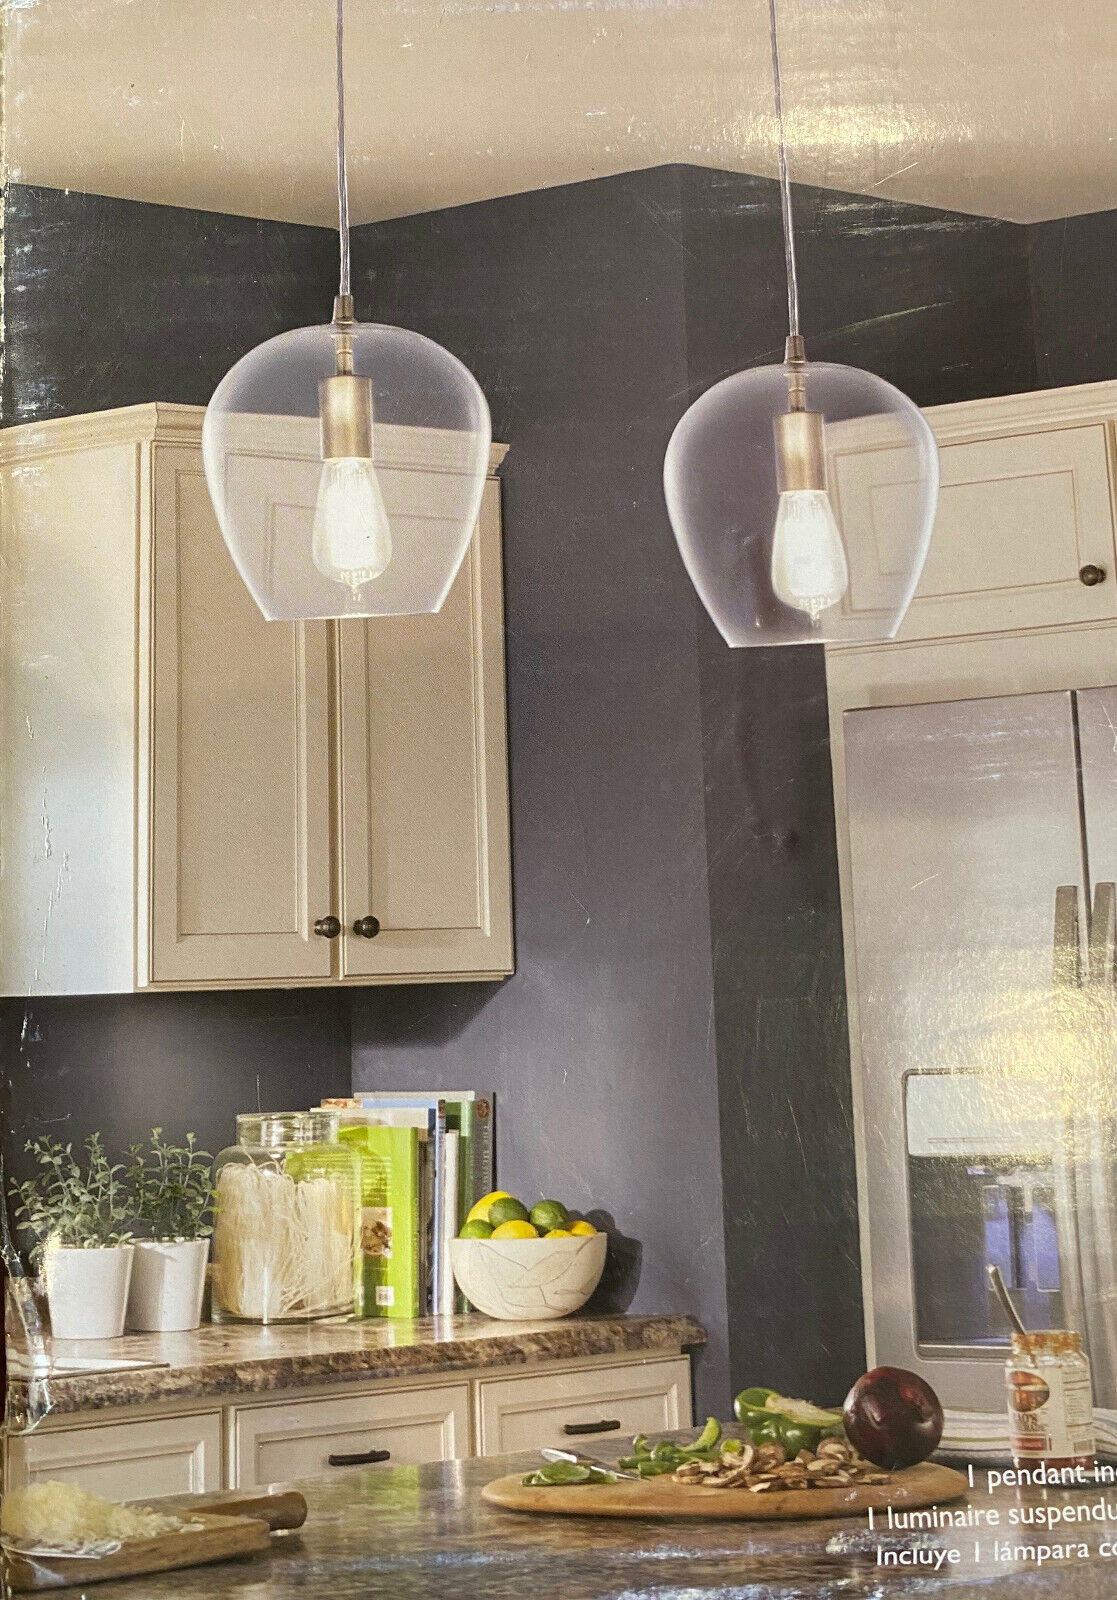 Allen + roth Brushed Nickel Pendant Light French Country Cottage Clear Glass Bel